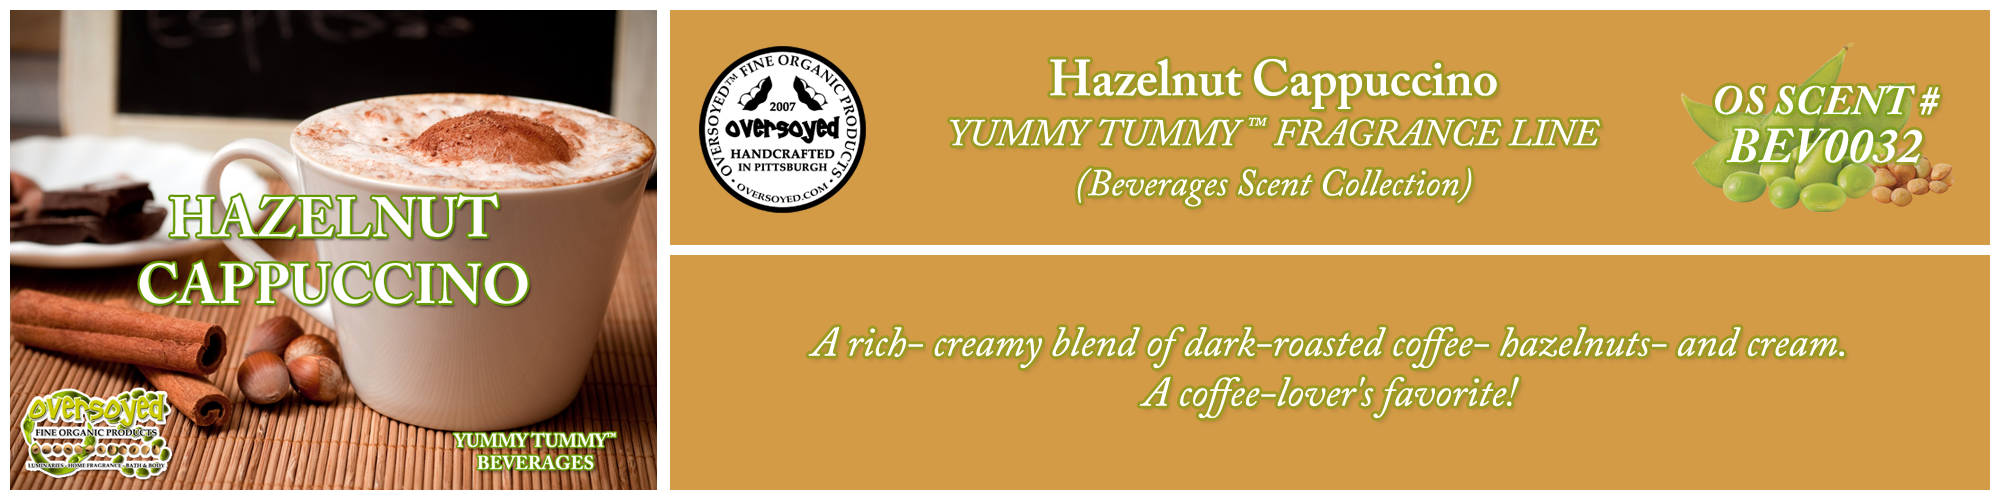 Hazelnut Cappuccino Handcrafted Products Collection